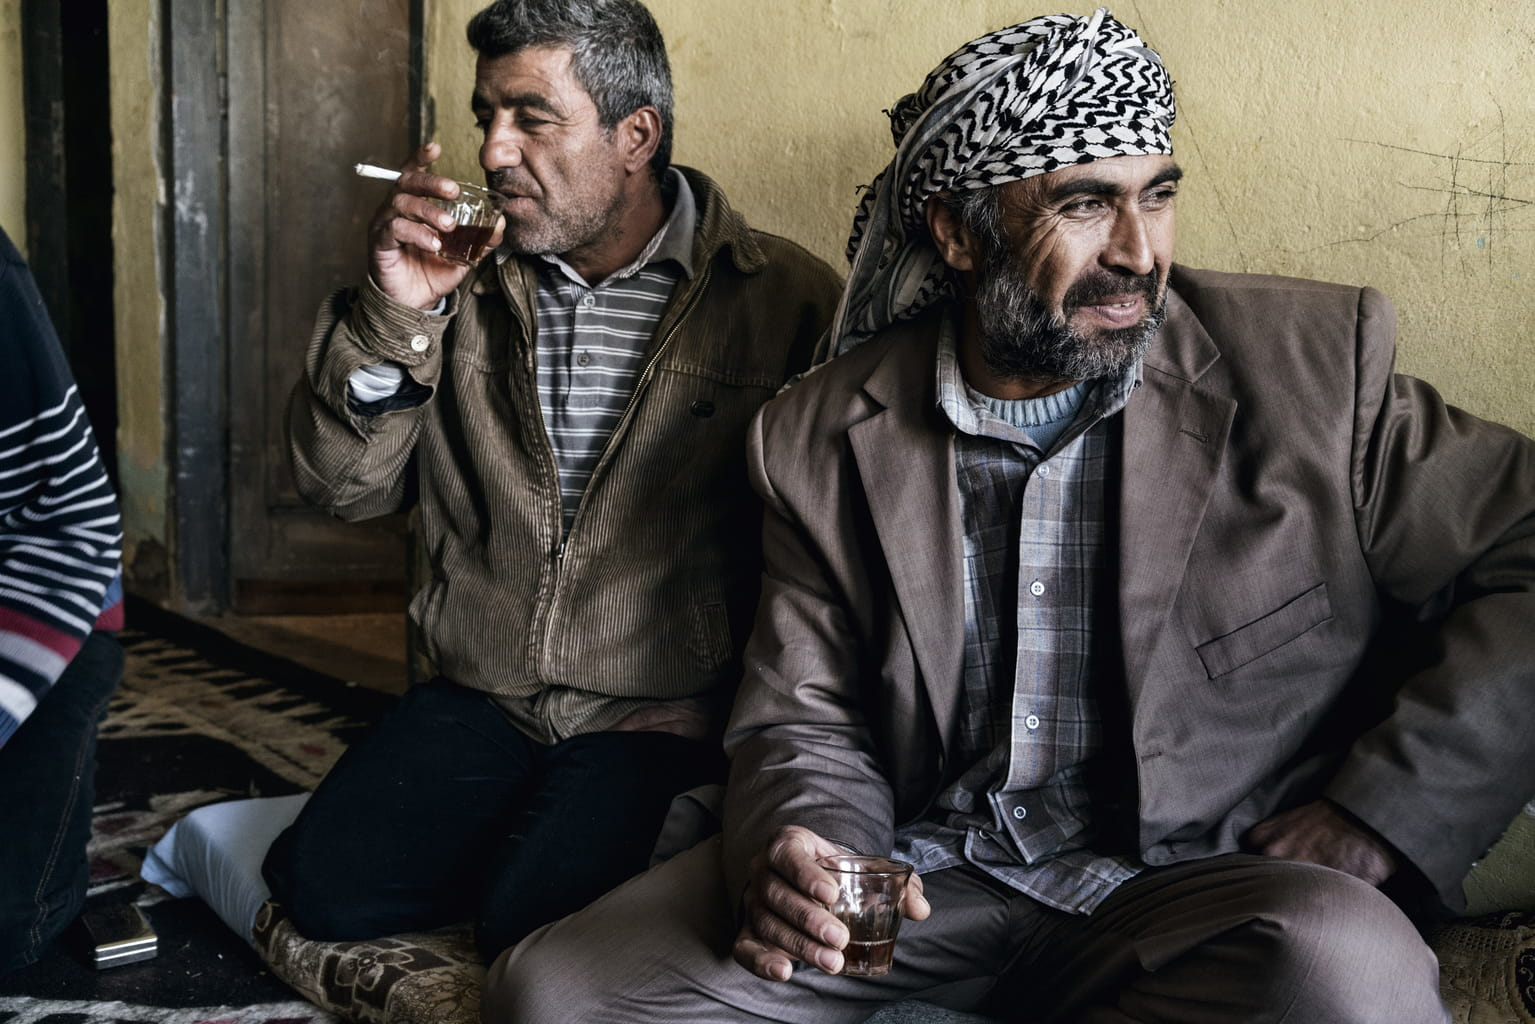 December 8, 2015, Reyhanli, Turkey. Men stop in to drink tea. There is little work in the countryside, especially in winter.